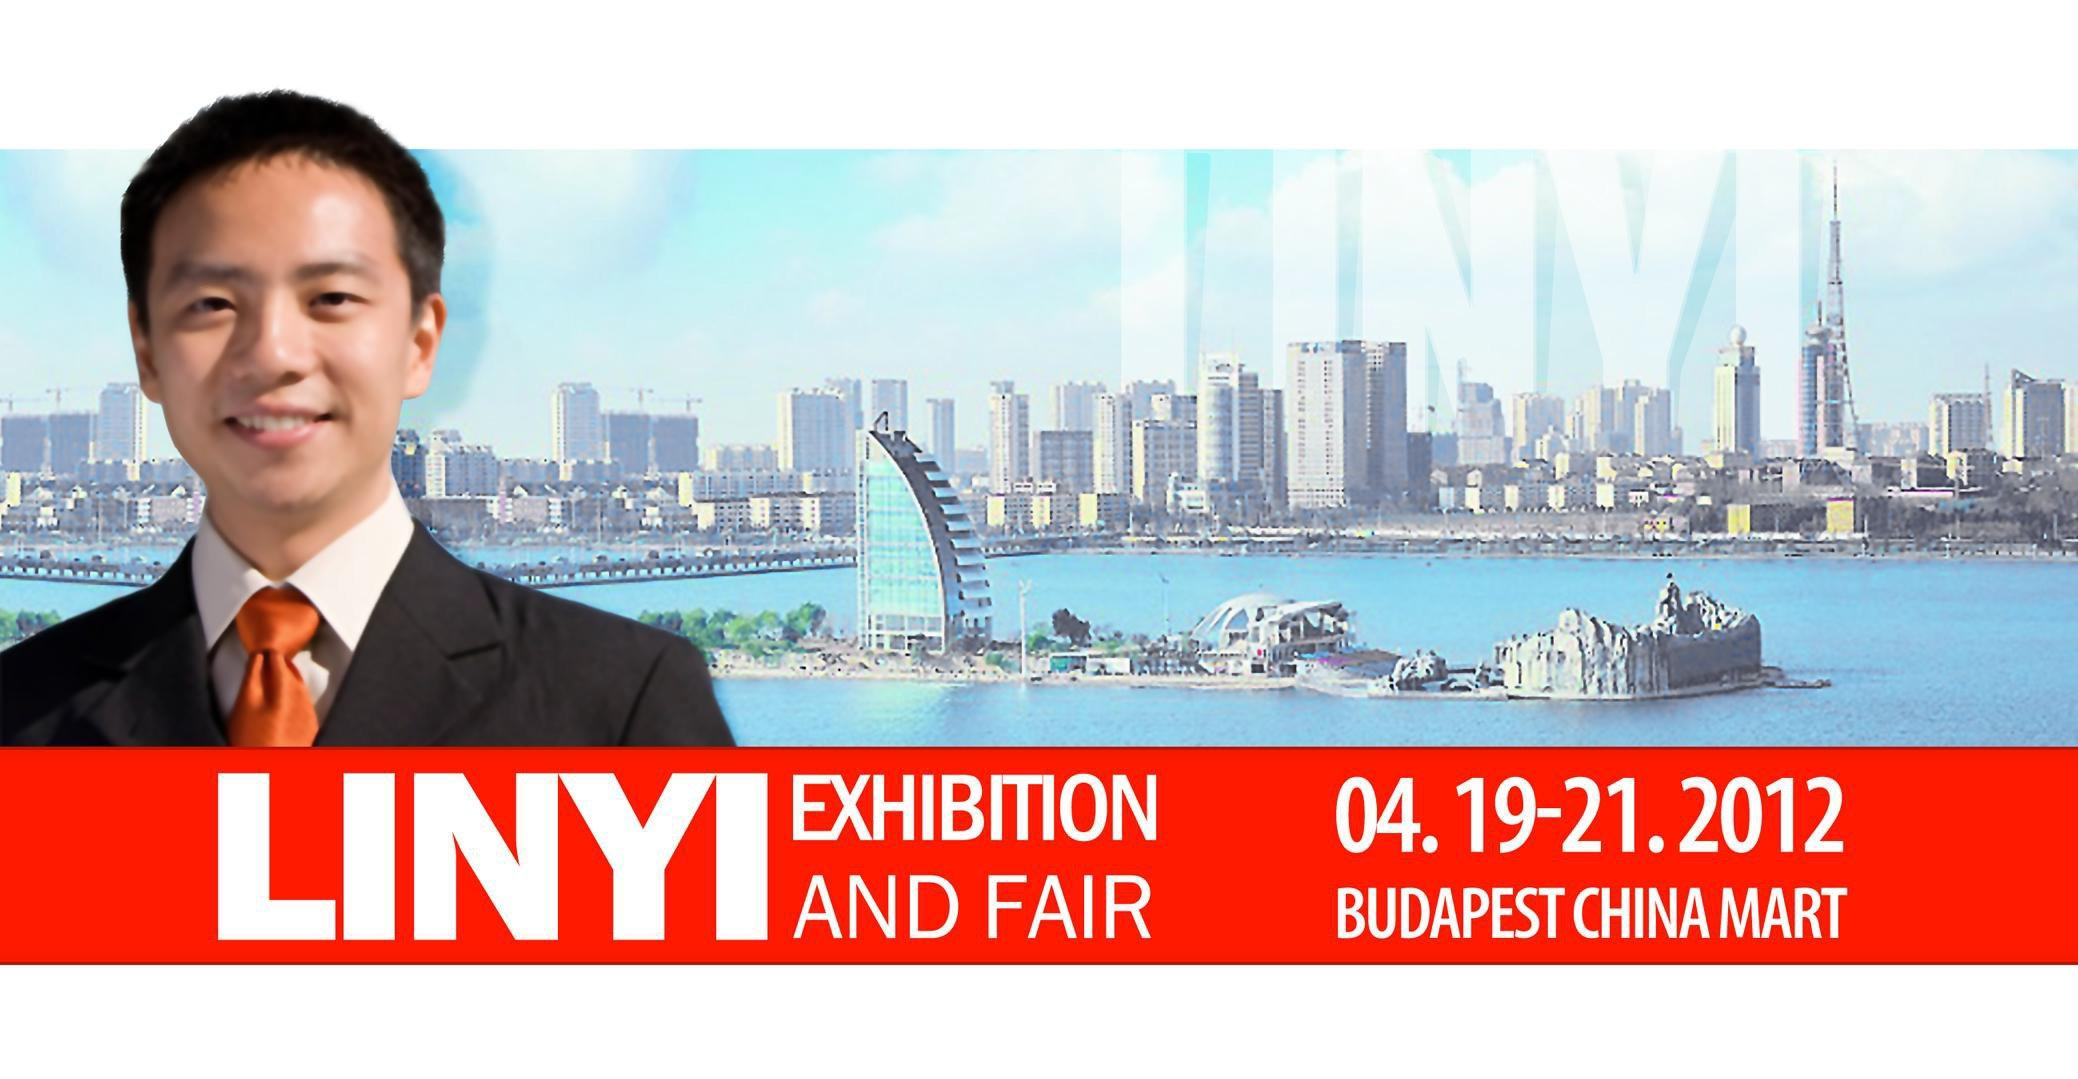 LinYi Exhibition & Fair, Budapest China Mart, 19 - 21 April